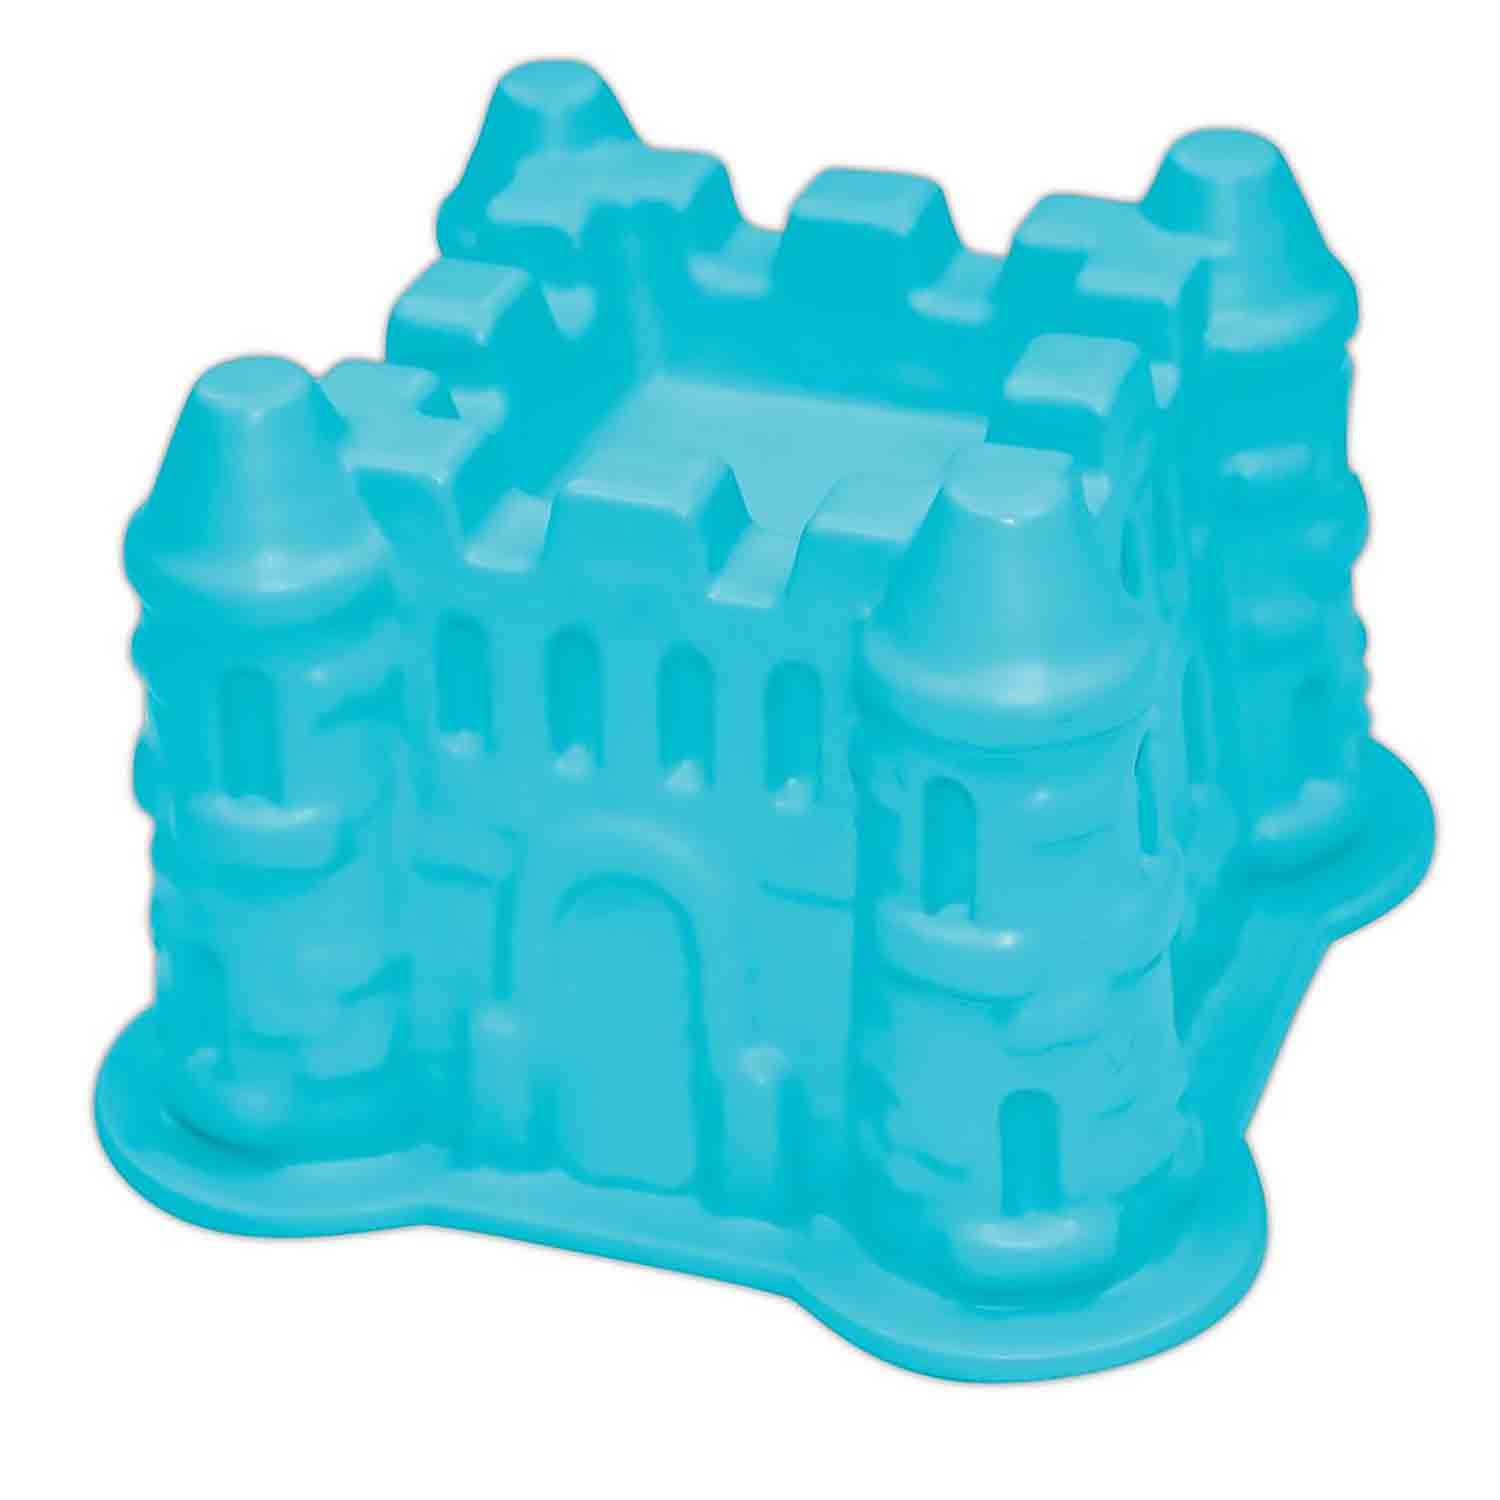 Castle Ice Cream Mold